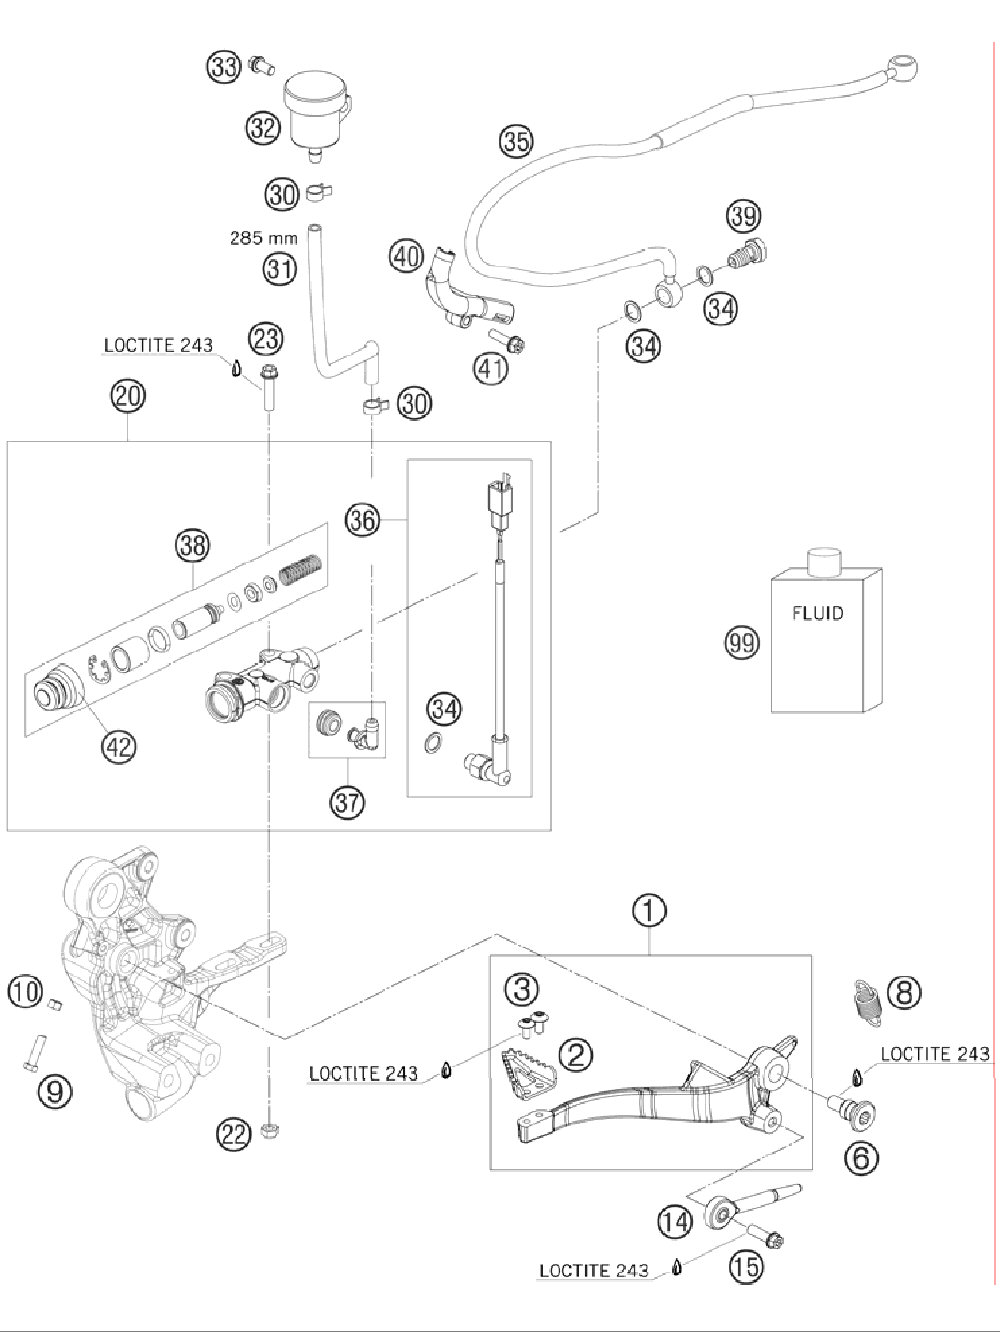 Smc Atv Wiring Diagram, Smc, Get Free Image About Wiring